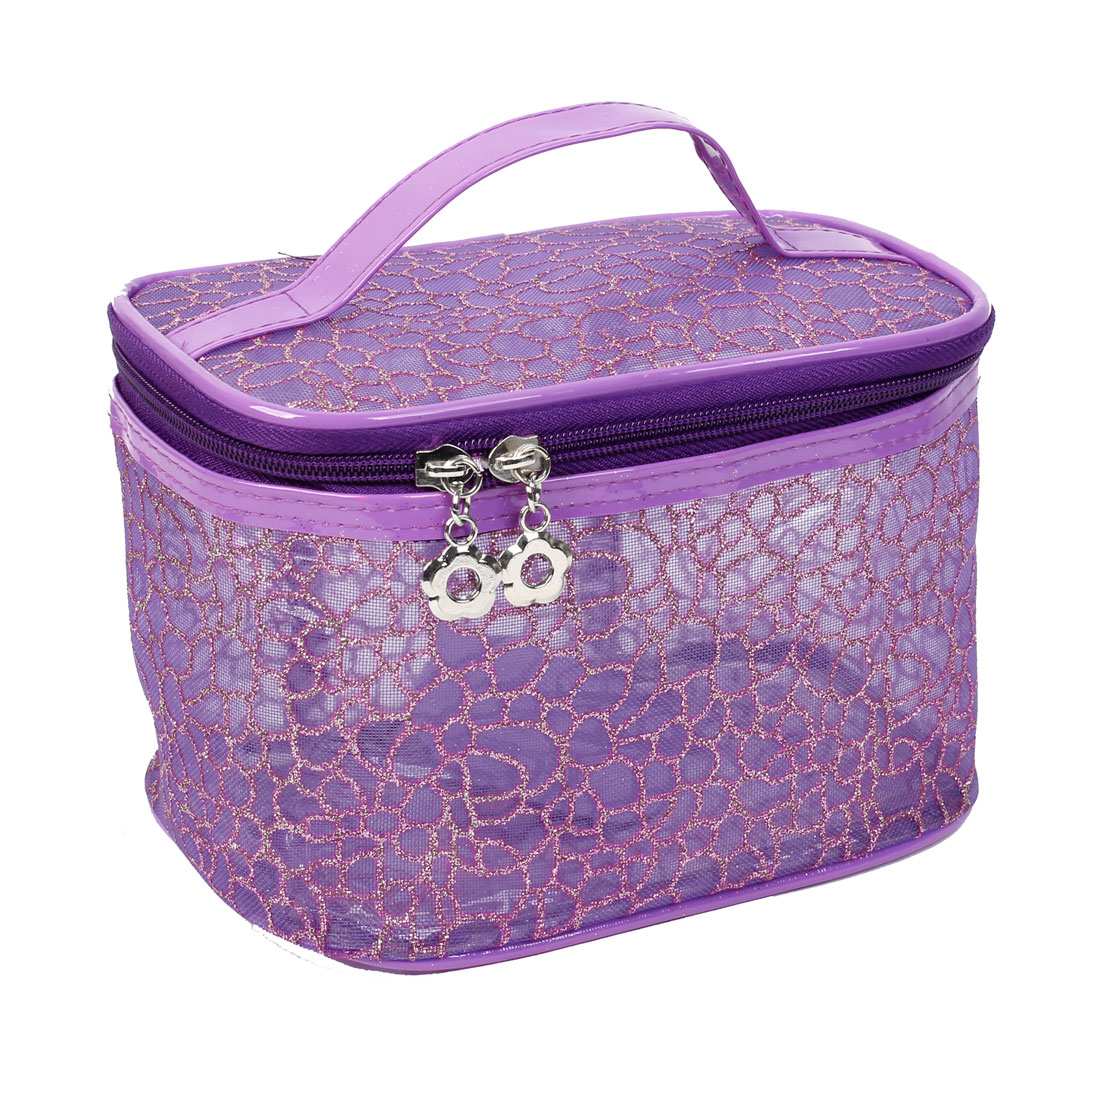 Purple Waterproof Storage Case Makeup Cosmetic Bag for Women